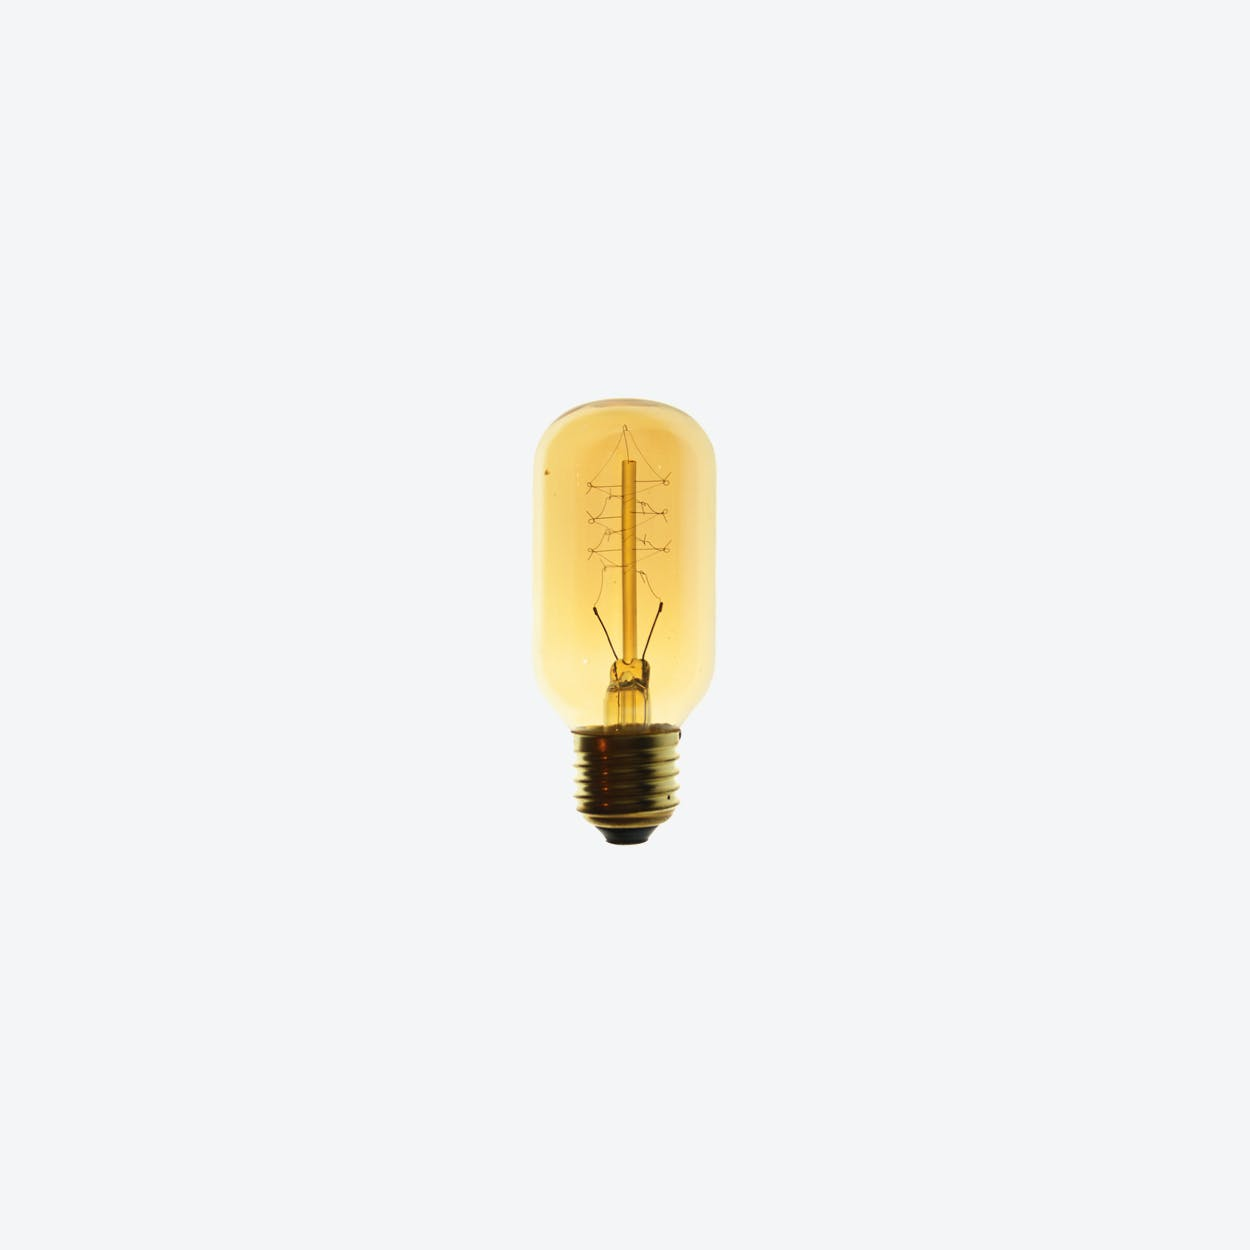 Carbon Wire Light Bulb